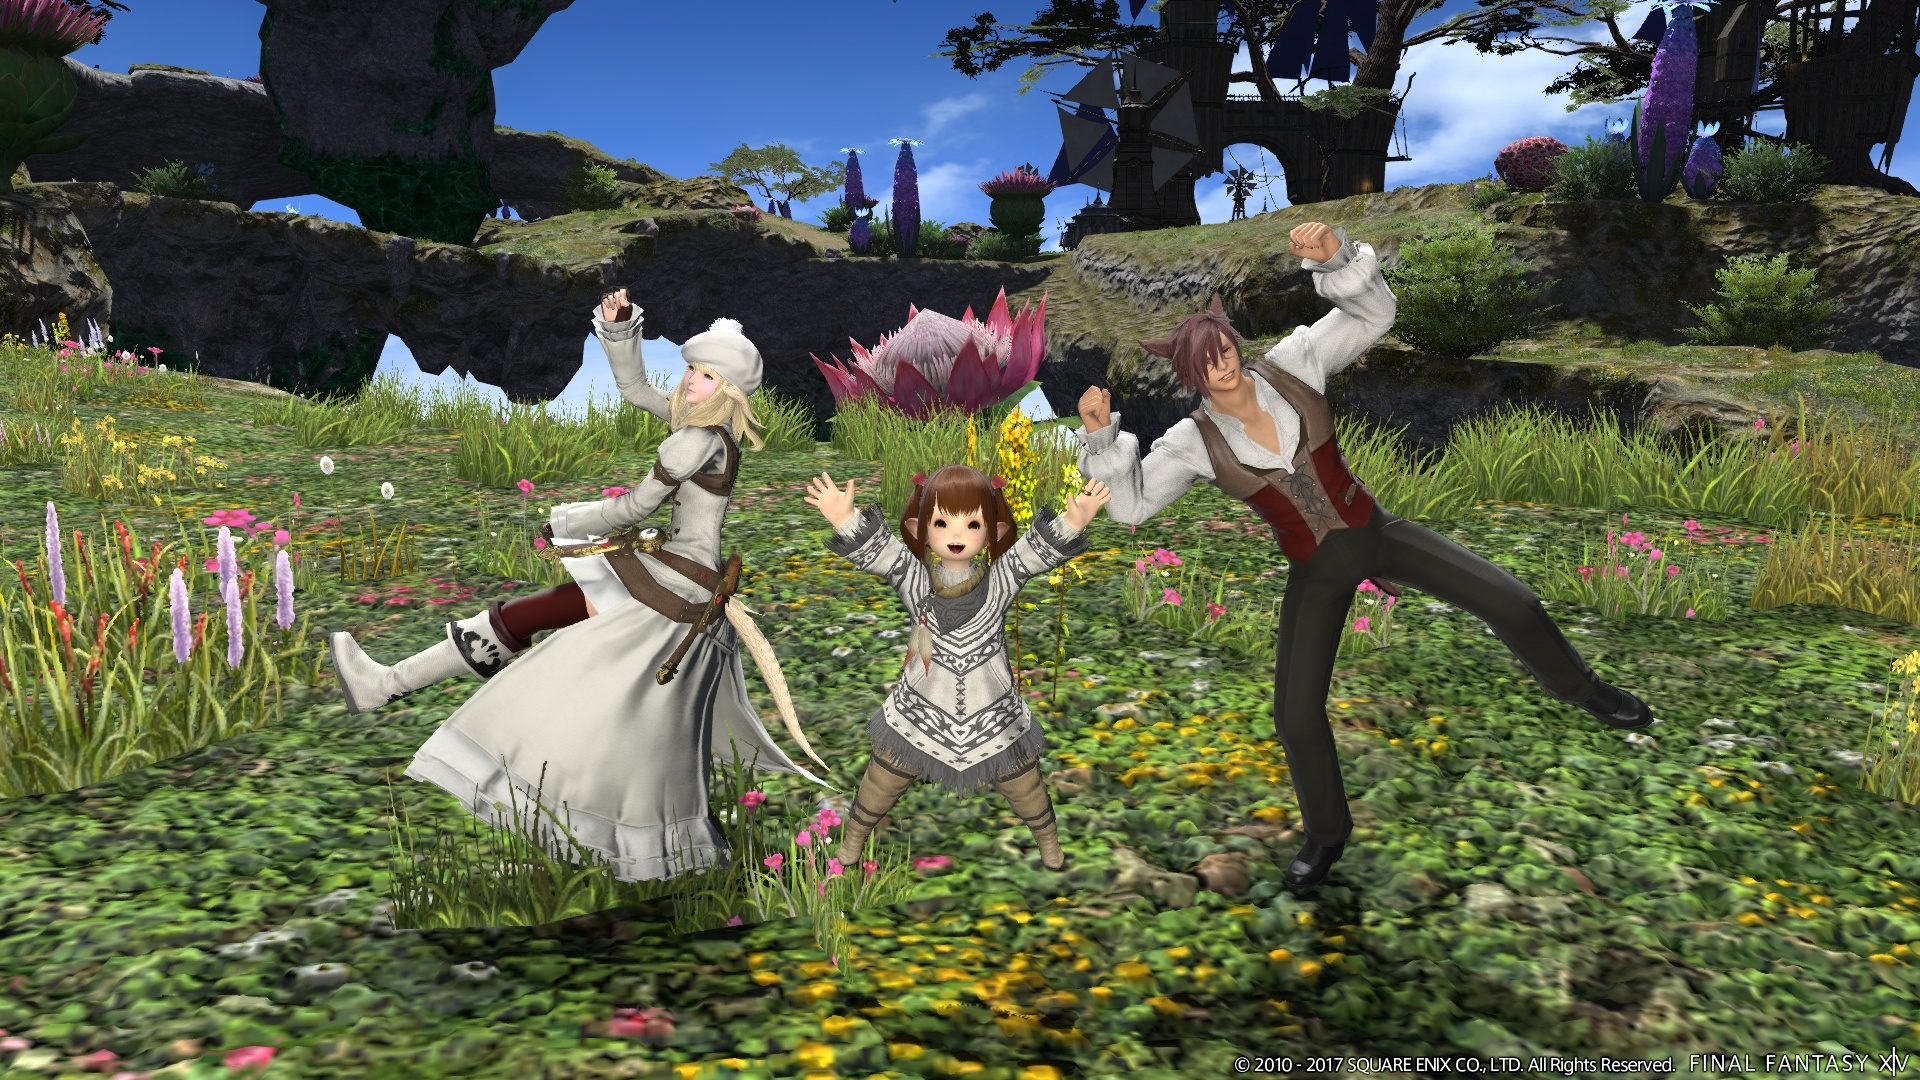 The edge to ff14